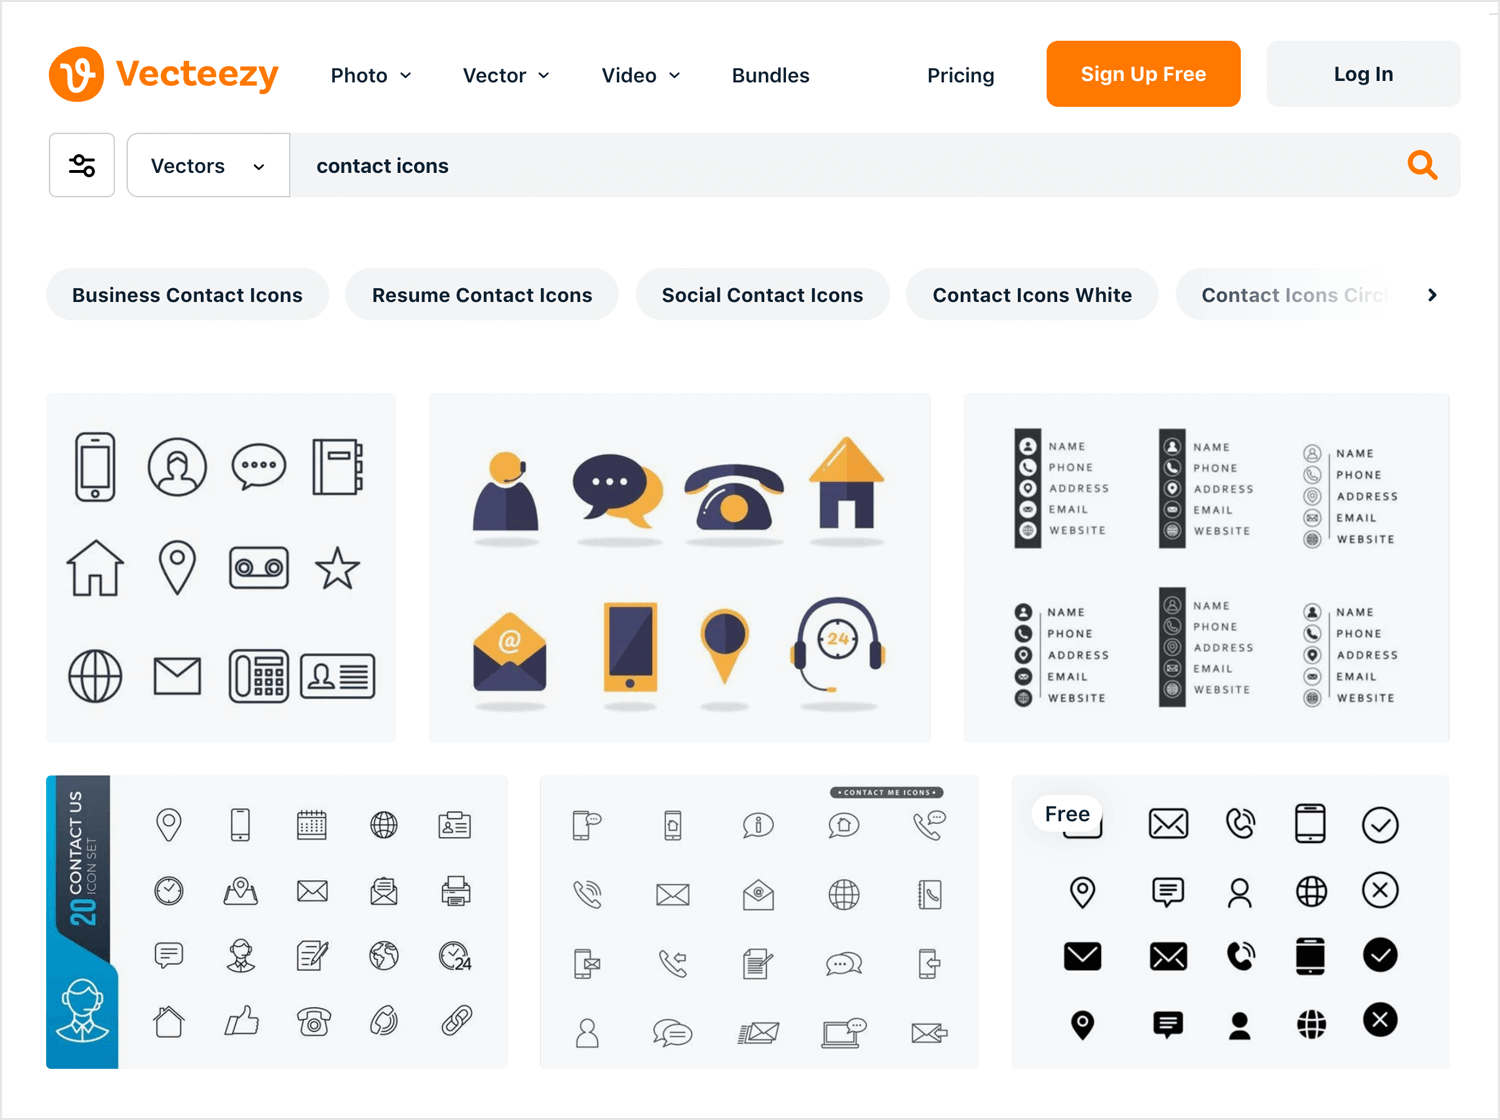 database fpr free icons and stock images for designers